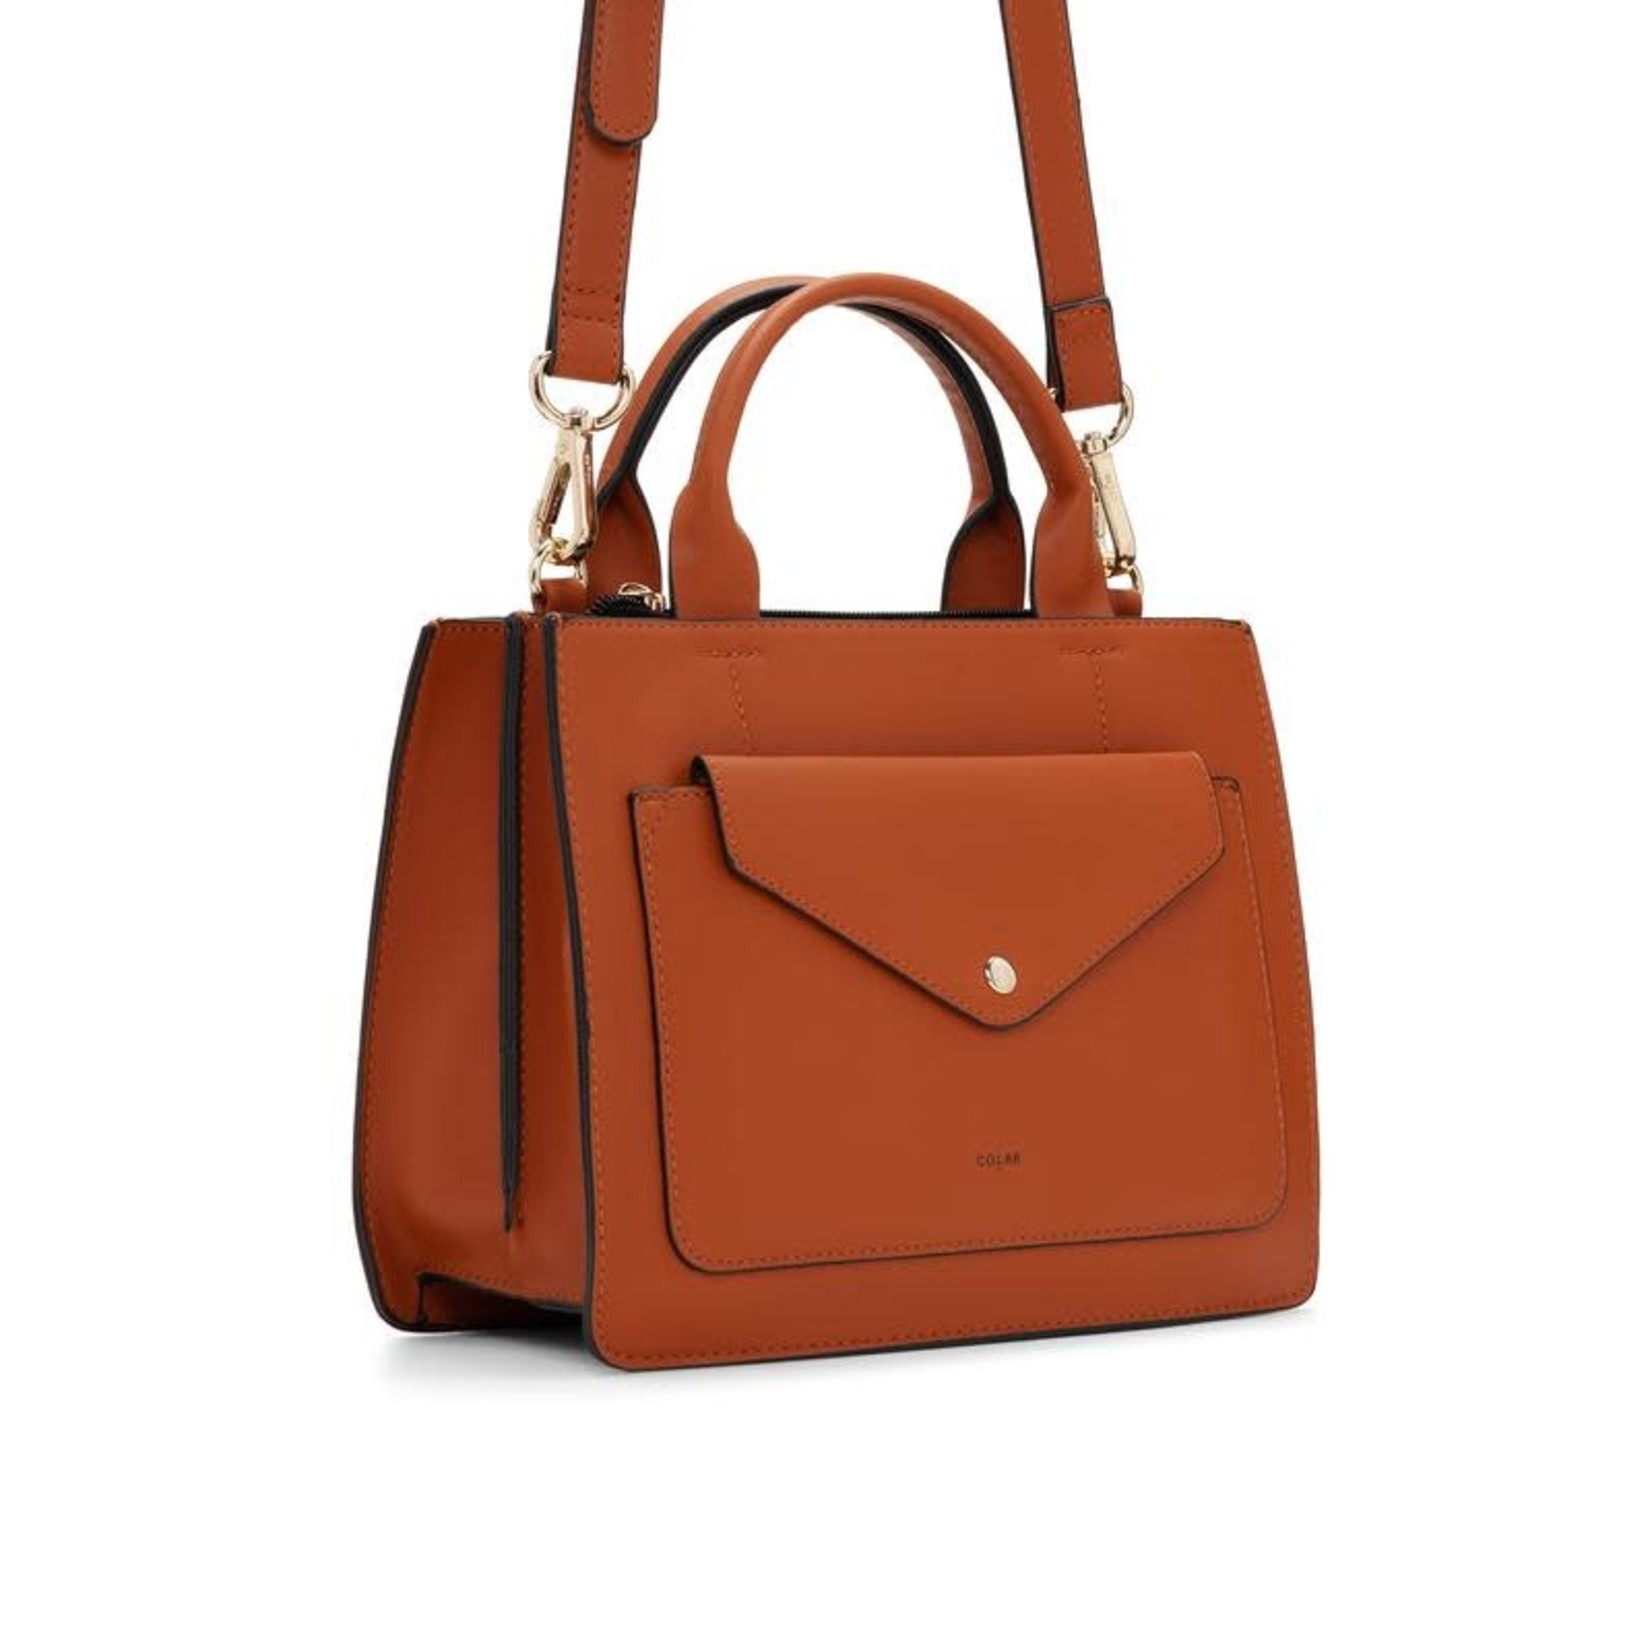 Co-lab Co-Lab MINI TOTE - cognac